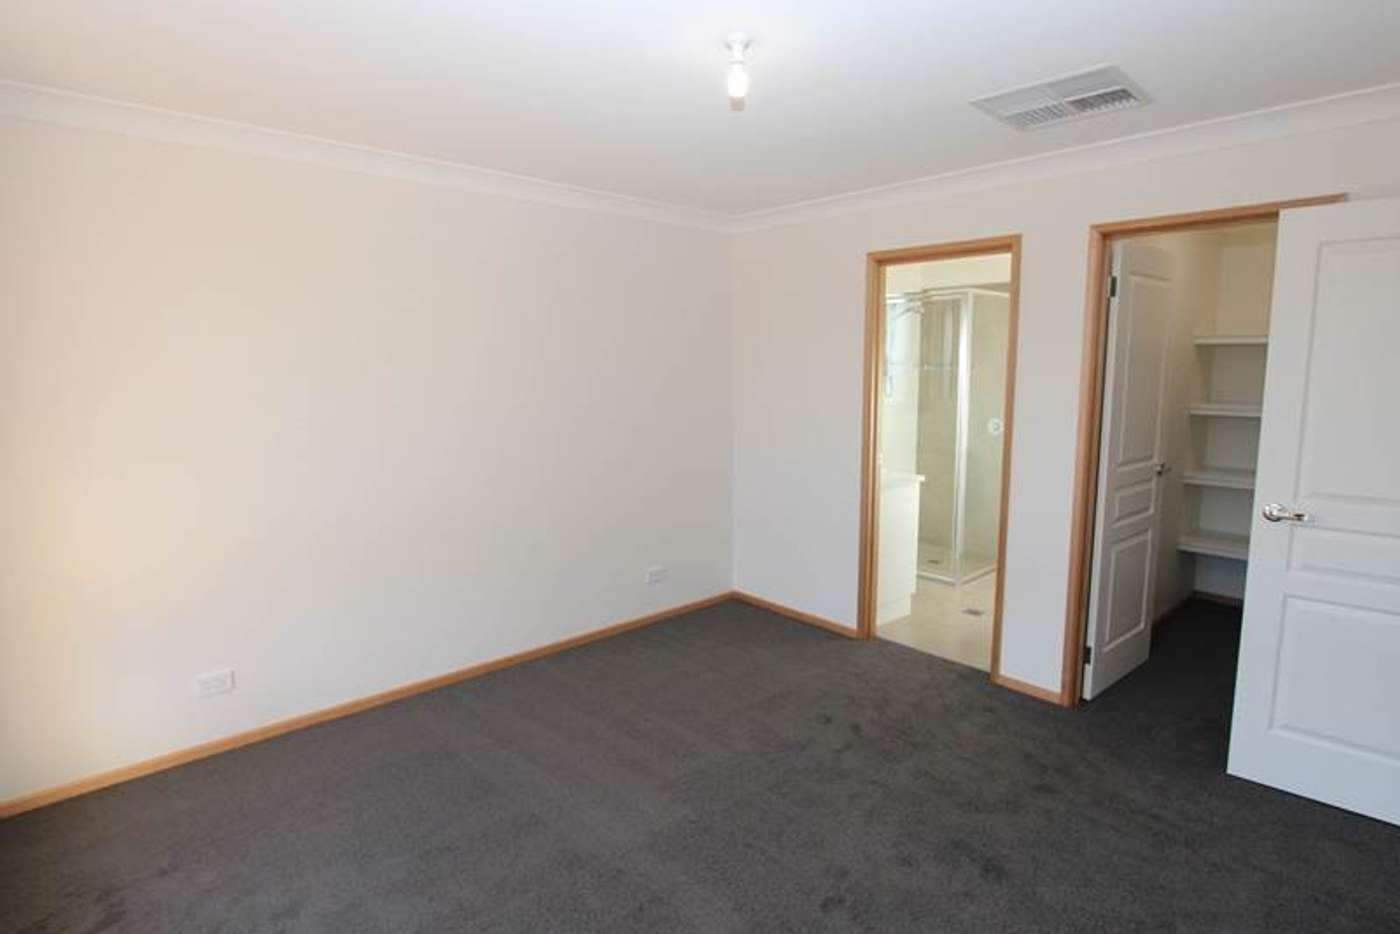 Sixth view of Homely house listing, 9 Peacock Drive, Turvey Park NSW 2650